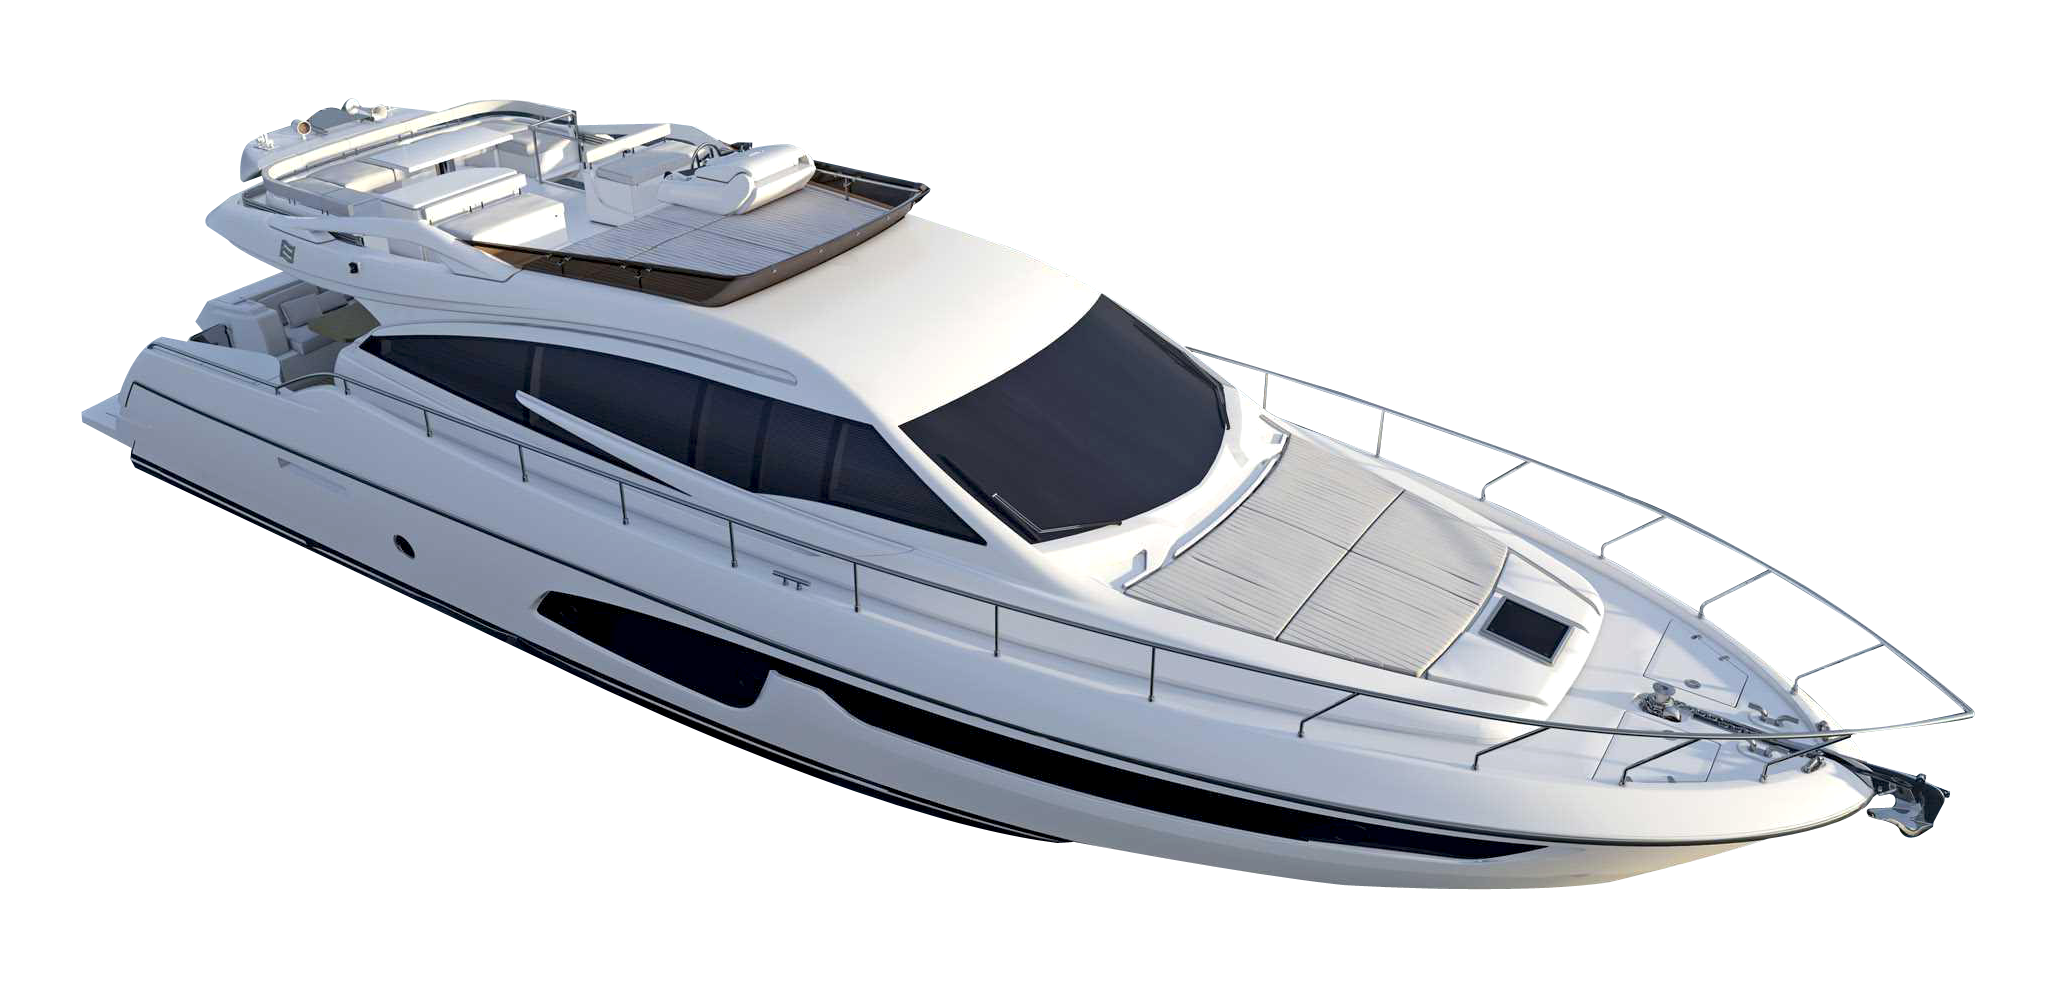 Luxury transparent images pluspng. Yacht png small ship clip transparent download